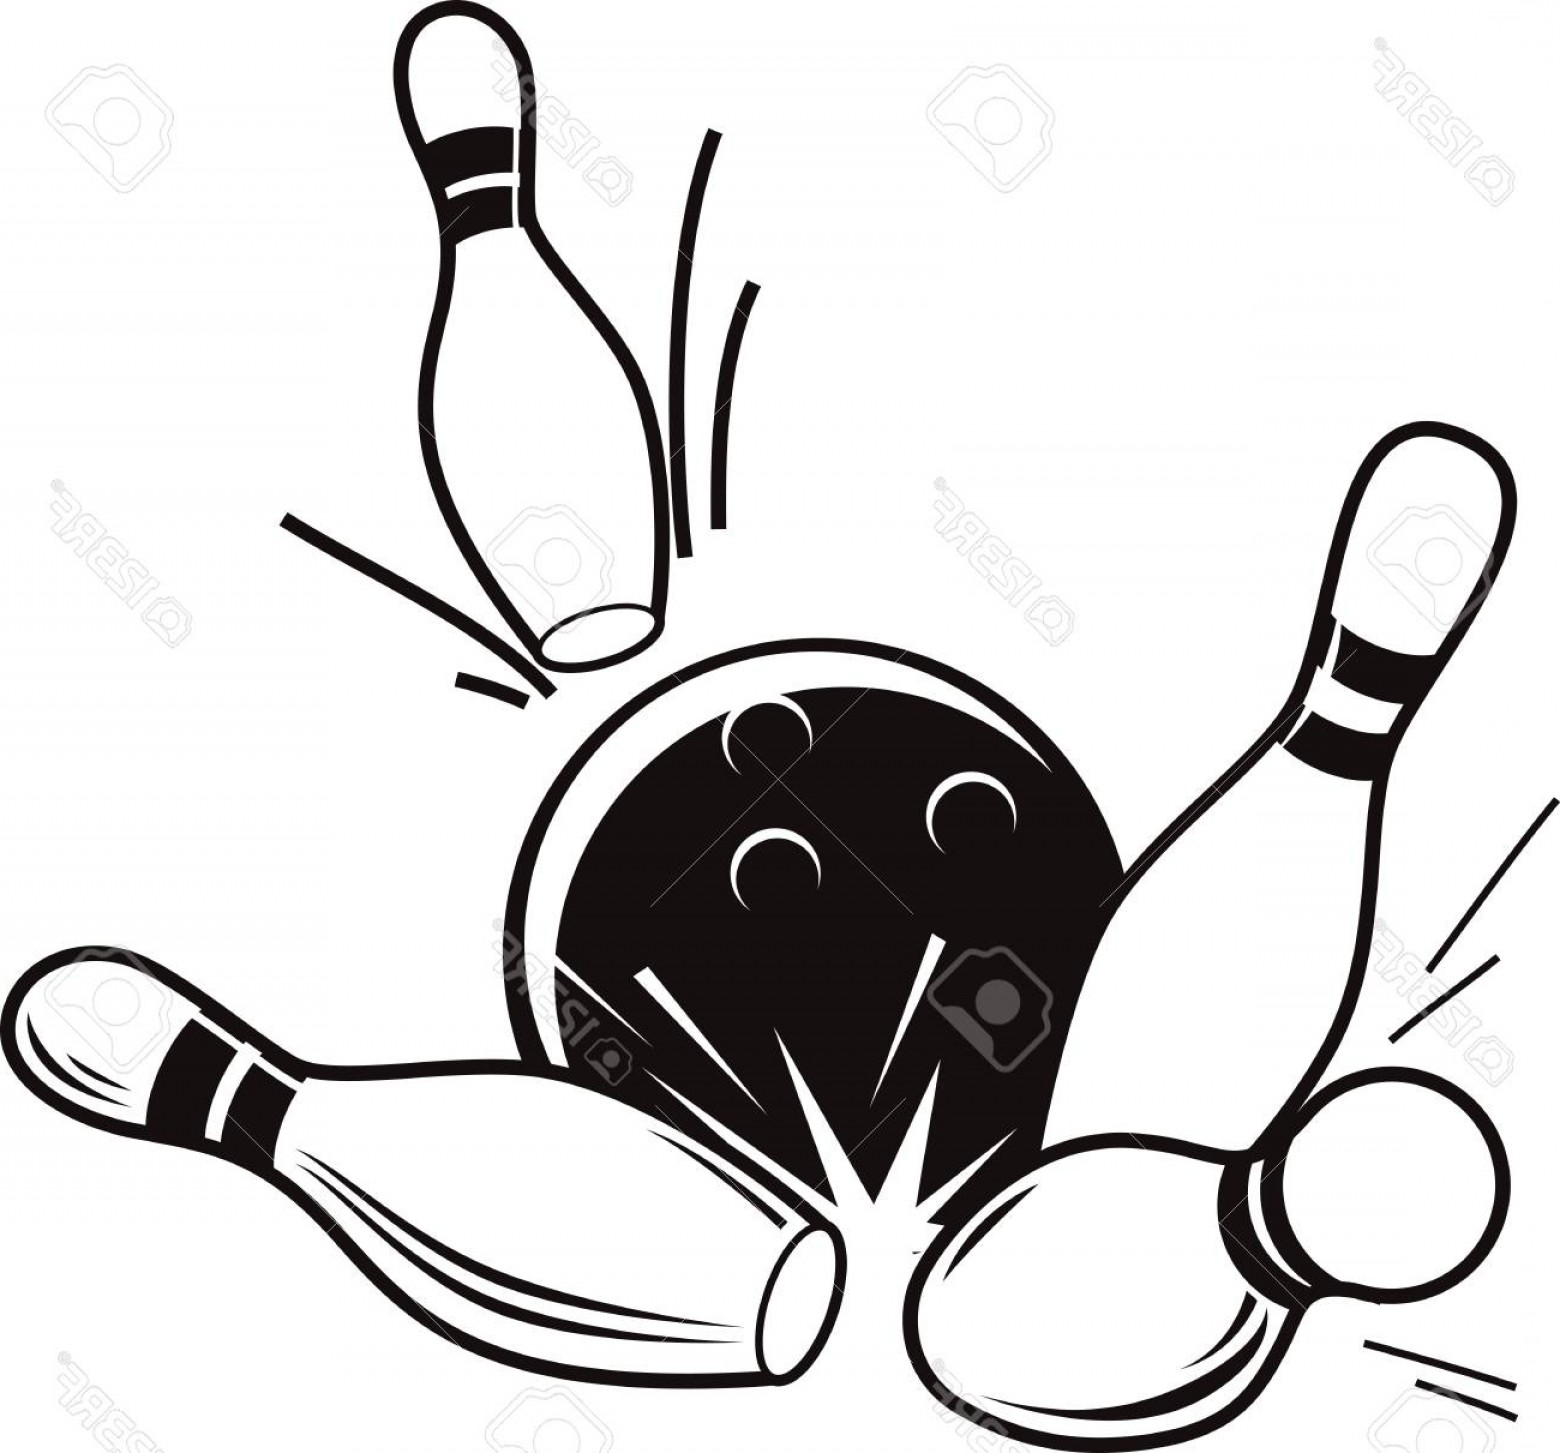 1560x1453 Photostock Vector Vector Black And White Illustration Of Bowling